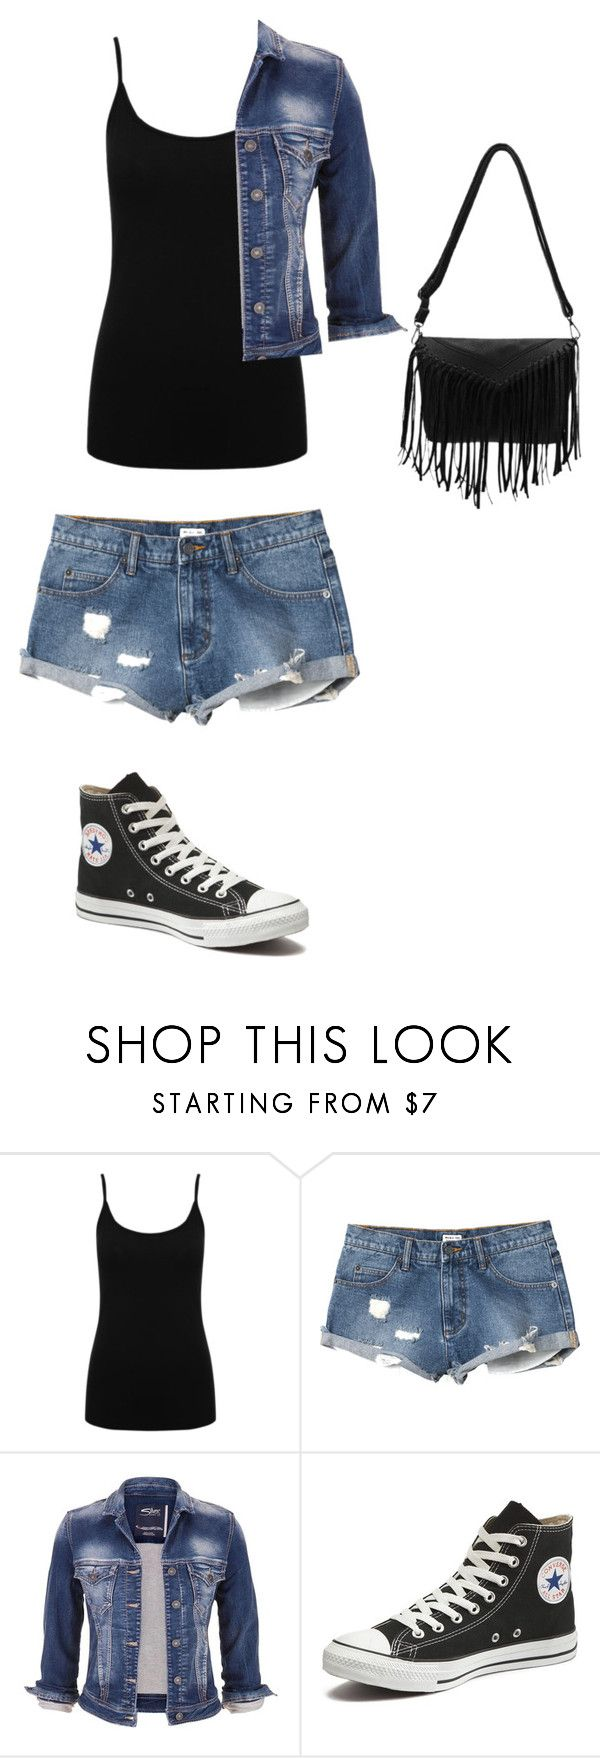 """""""Getting ready for a day out with Austin"""" by anoai ❤ liked on Polyvore featuring M&Co, RVCA, maurices and Converse"""